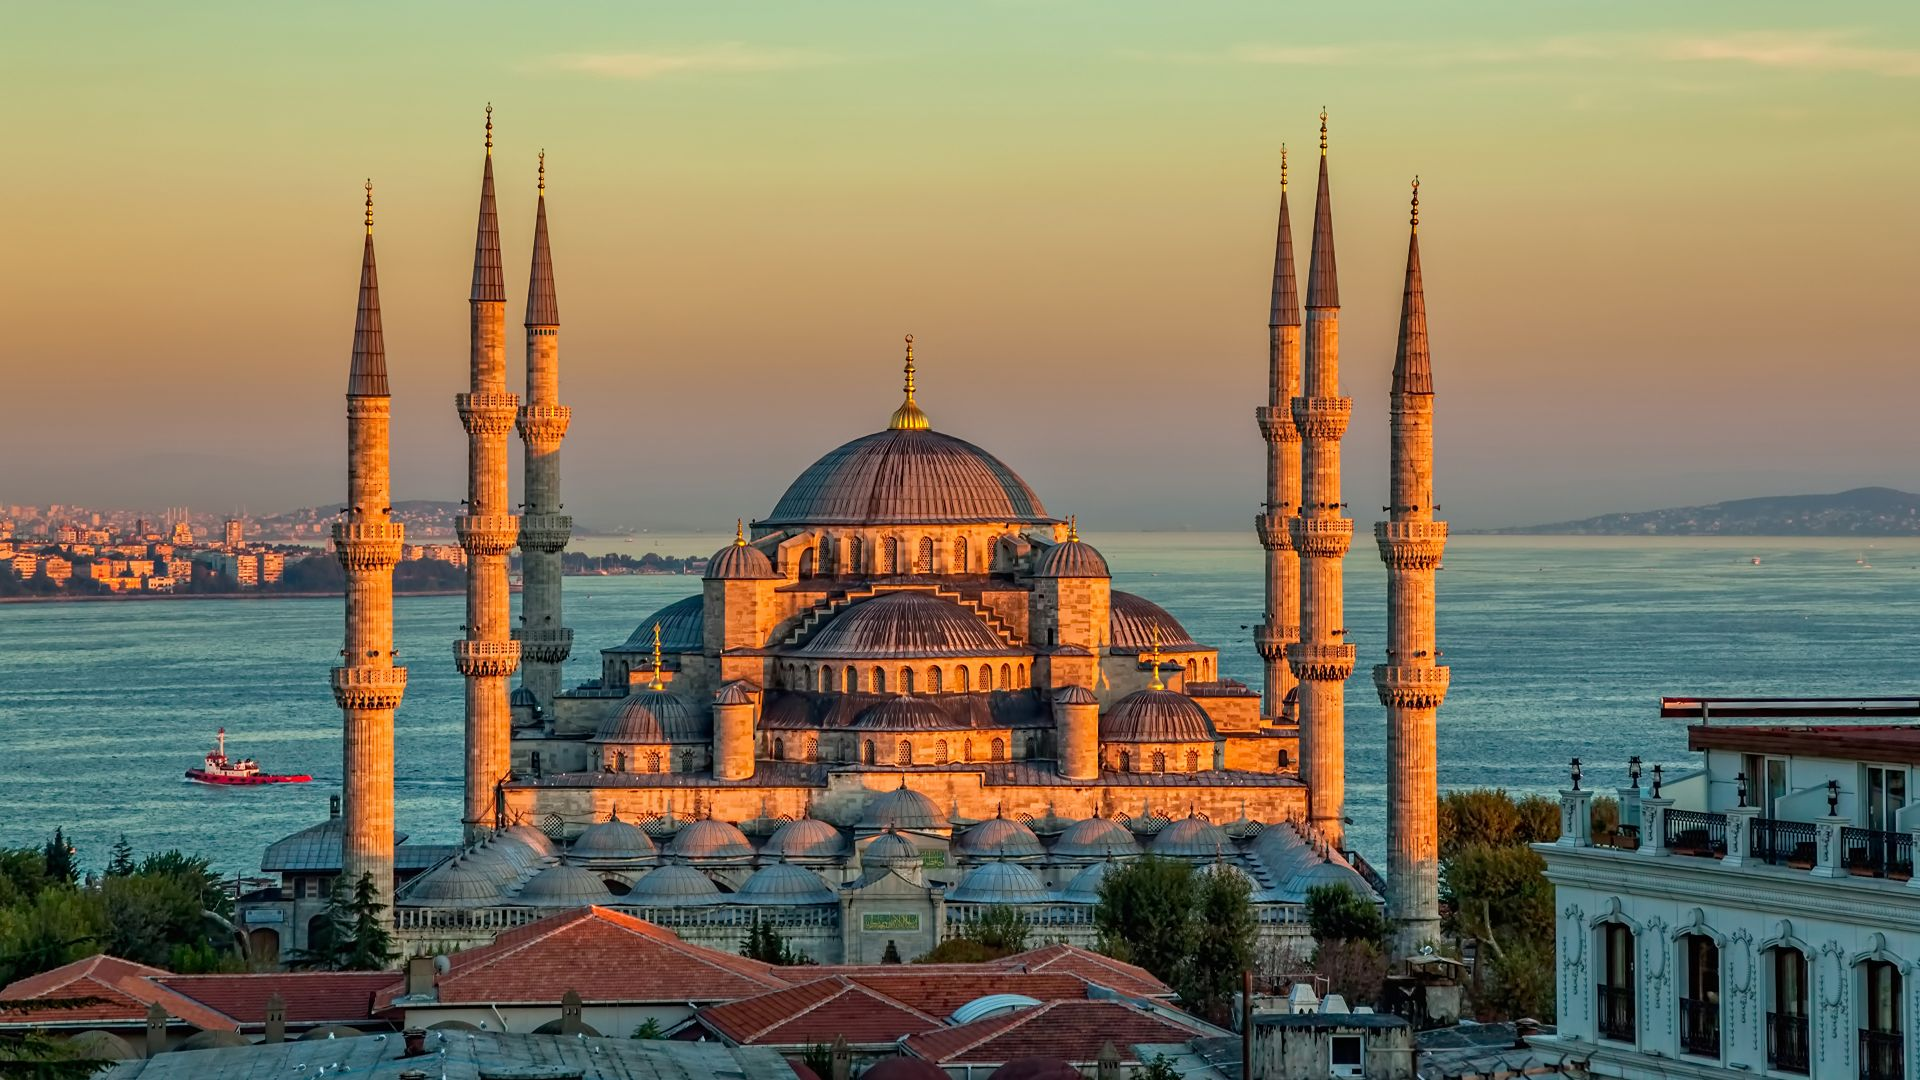 Голубая мечеть, Sultan Ahmed Mosque, Turkey, Istanbul, sunrise, 4k (horizontal)